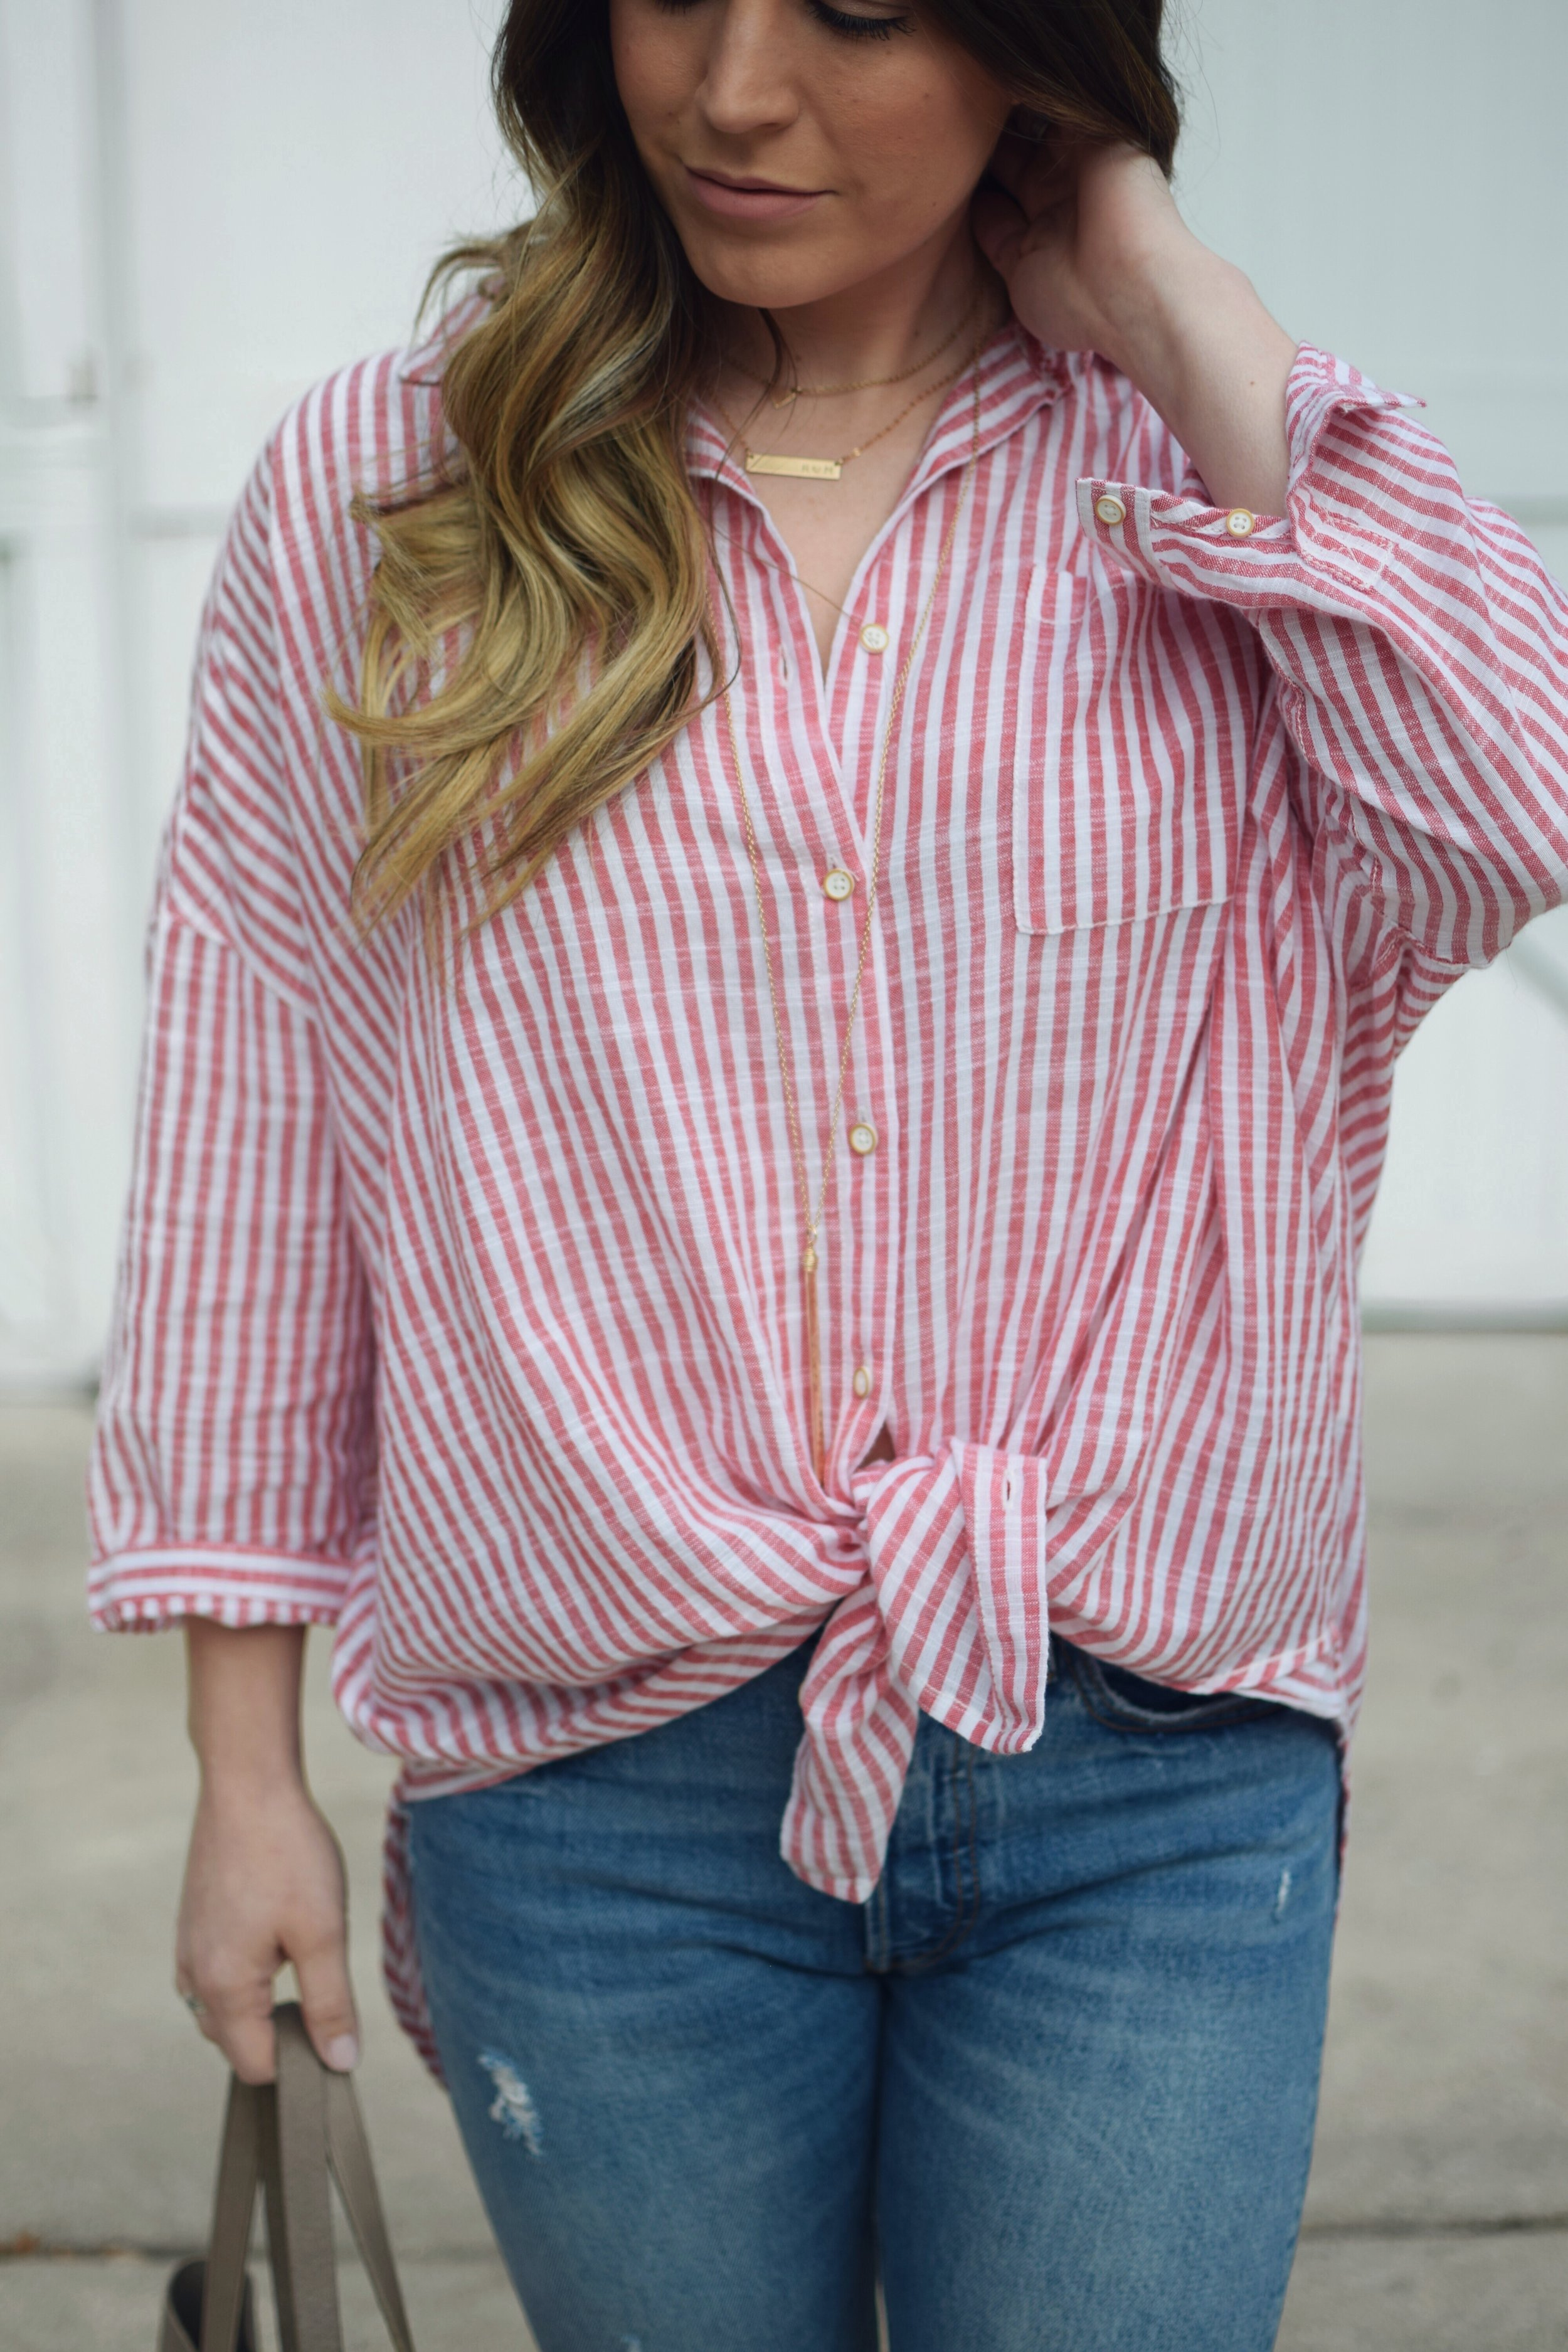 red & white striped top / levi's denim / summer outfit idea